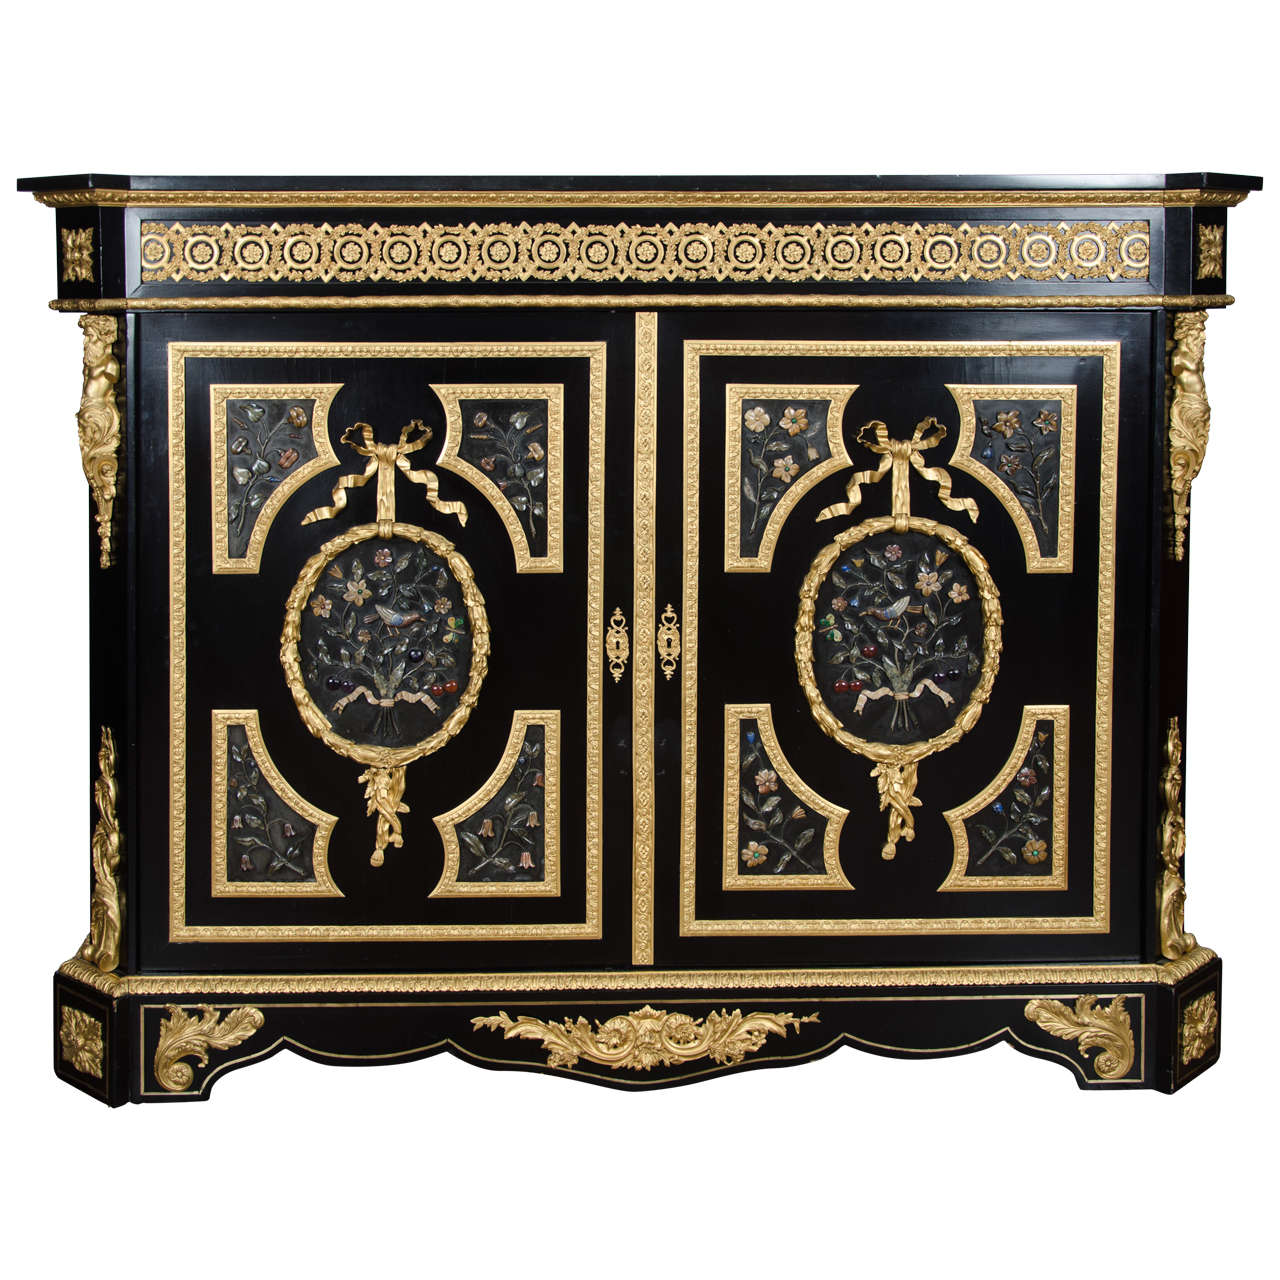 Large French Pietra-Dura Cabinet, 19th Century